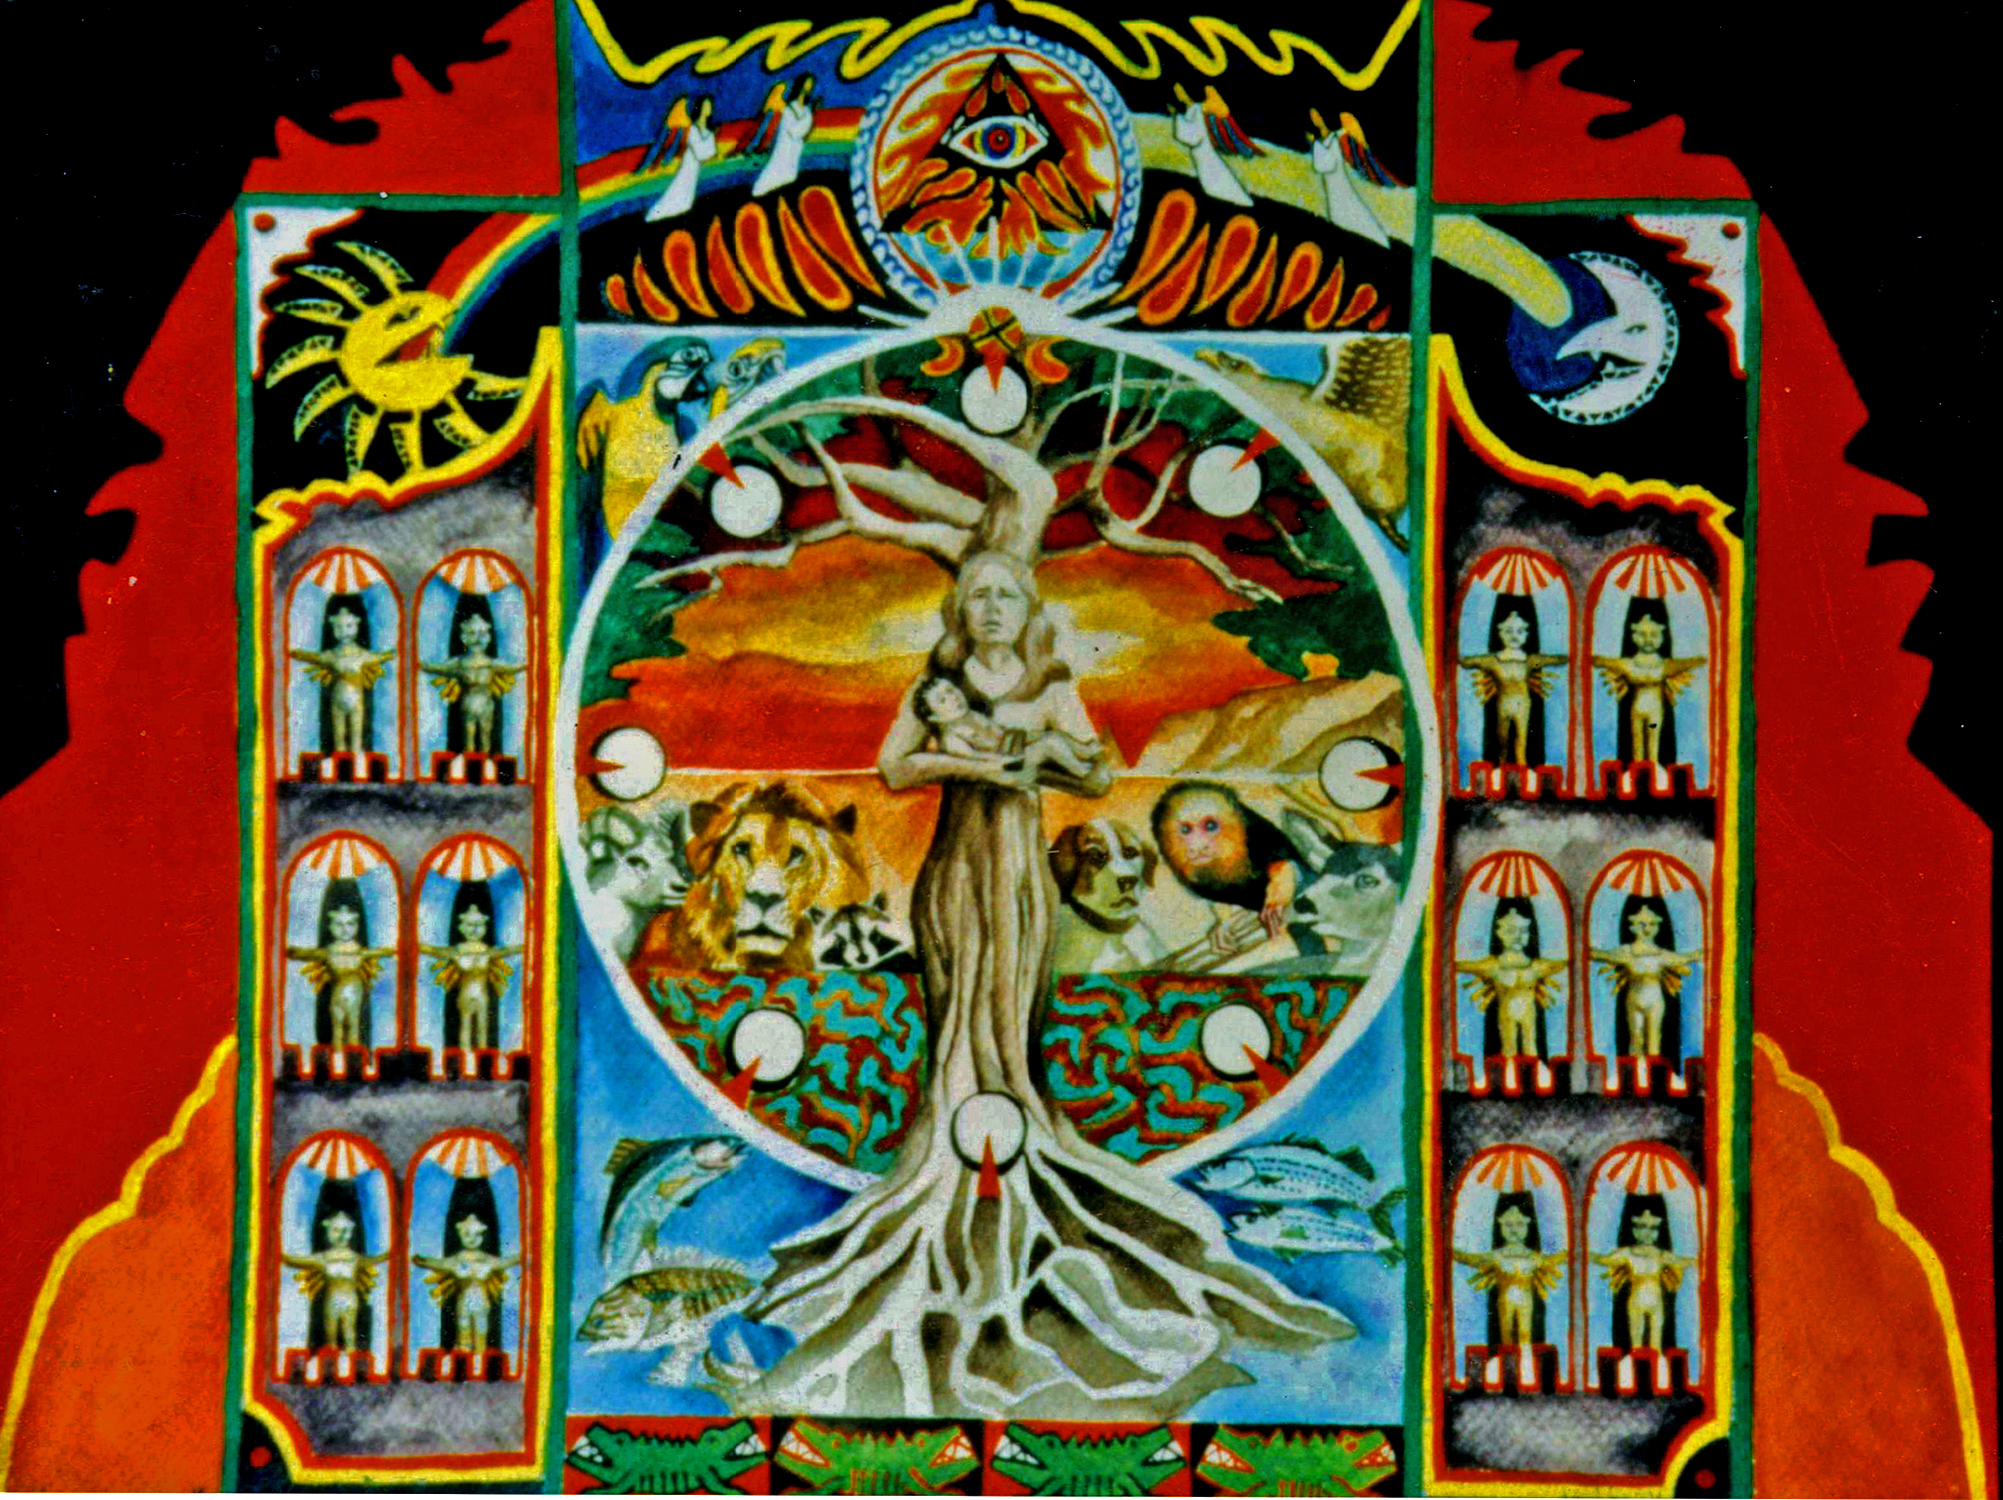 Altar of Mother Nature (1989)